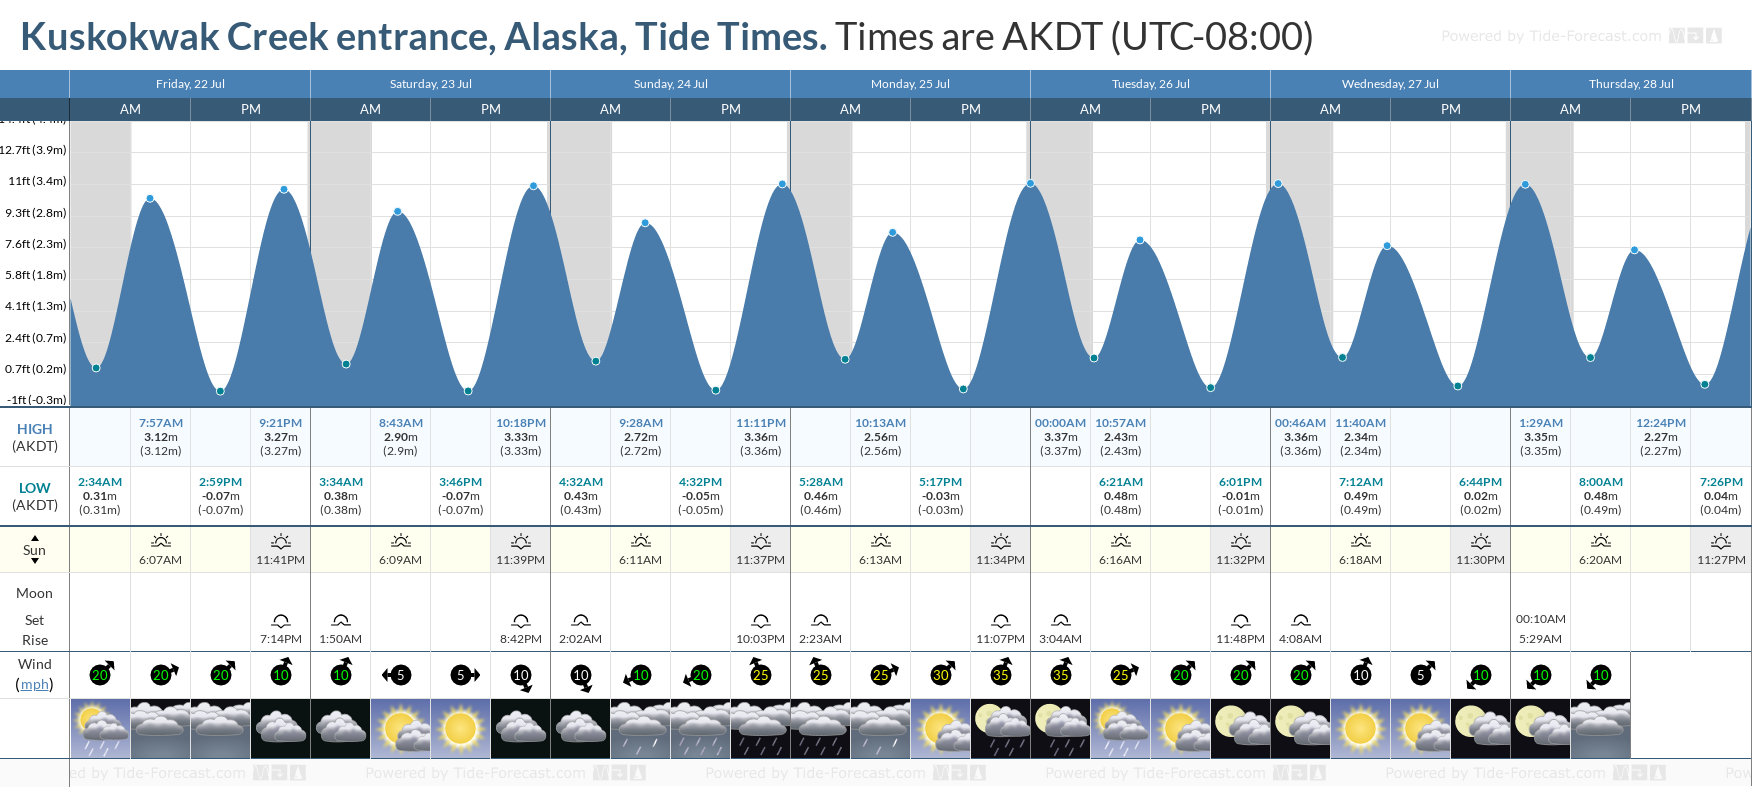 Kuskokwak Creek entrance, Alaska Tide Chart including high and low tide tide times for the next 7 days